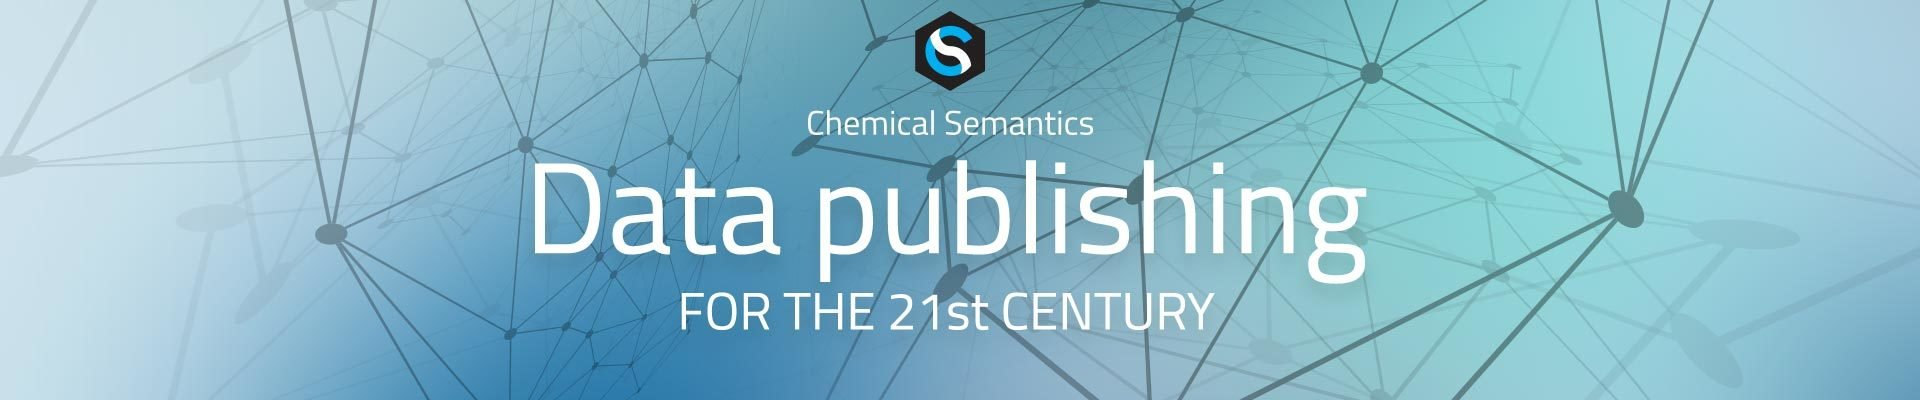 Mirek Sopek i Chemical Semantics na Venture Summit West 2016